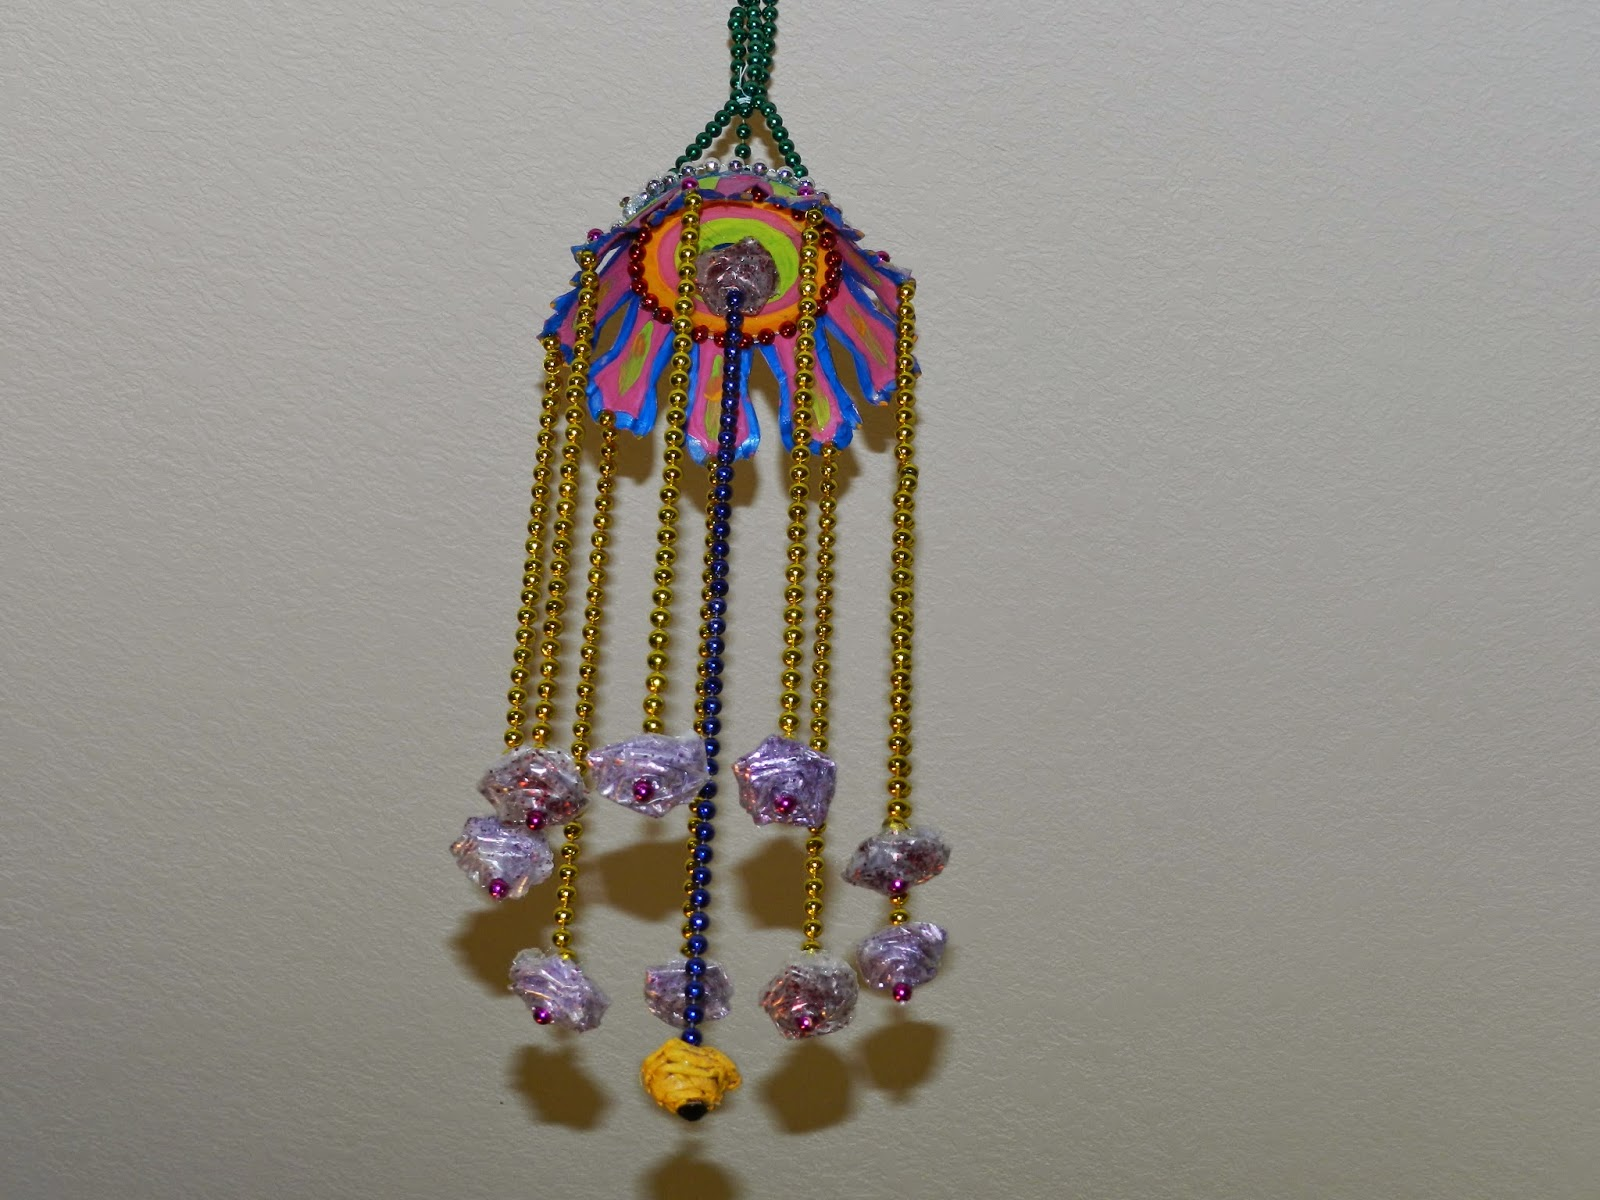 Creative diy crafts hanging wall craft with bead chain for Craft using waste